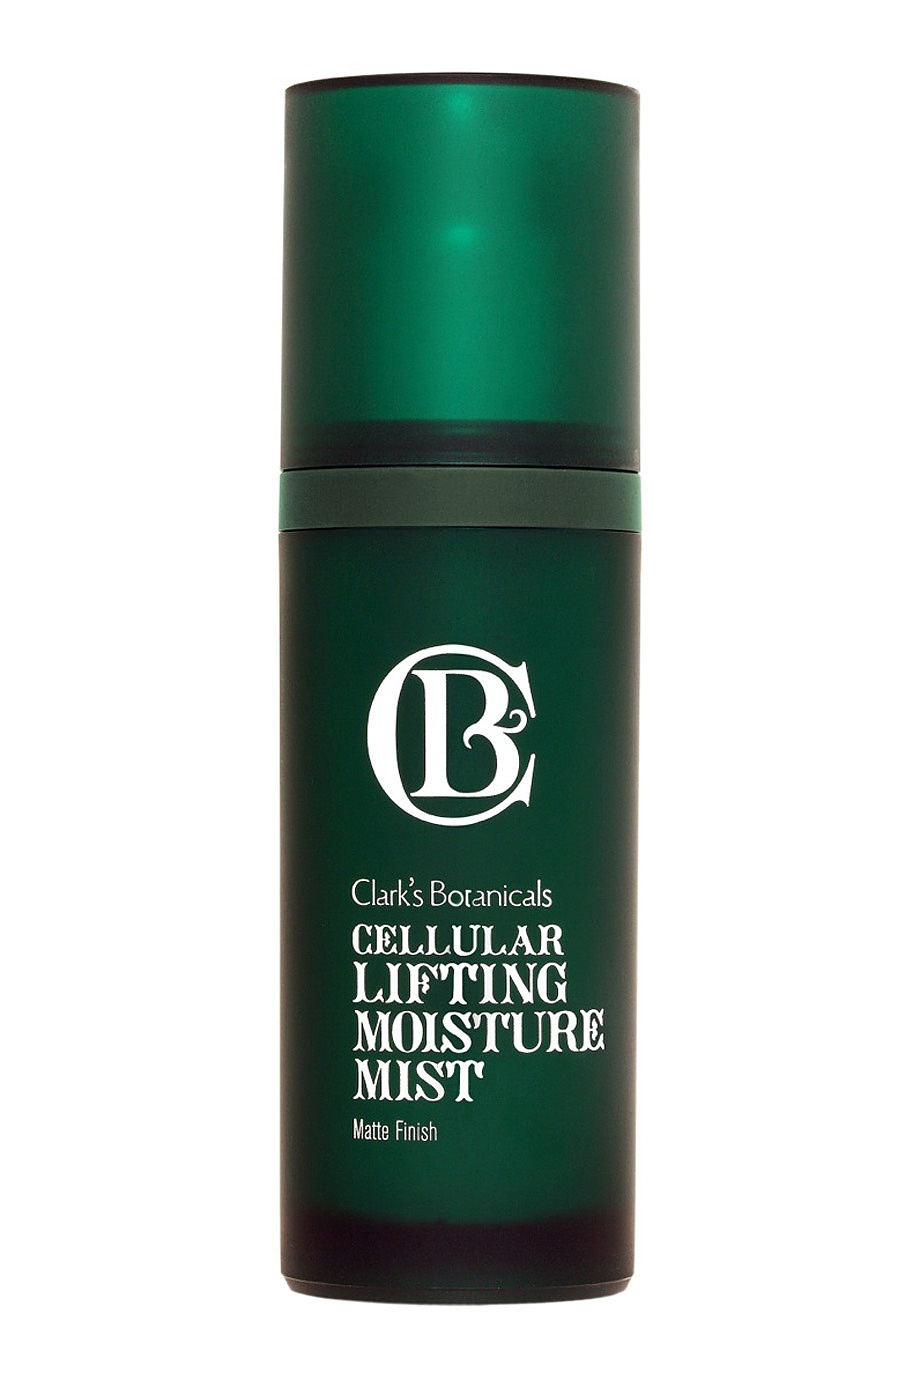 Лифтинг-спрей для лица Cellular Lifting Moisture Mist 100ml Clark's Botanicals (фото)